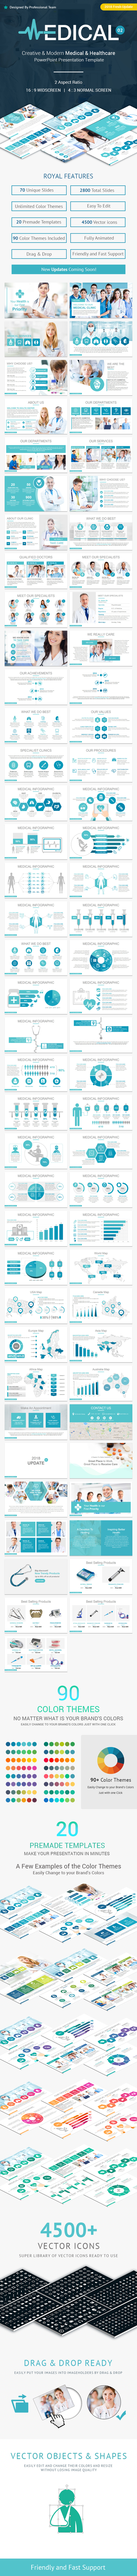 Medical and Healthcare 2 PowerPoint Presentation Template - Business PowerPoint Templates